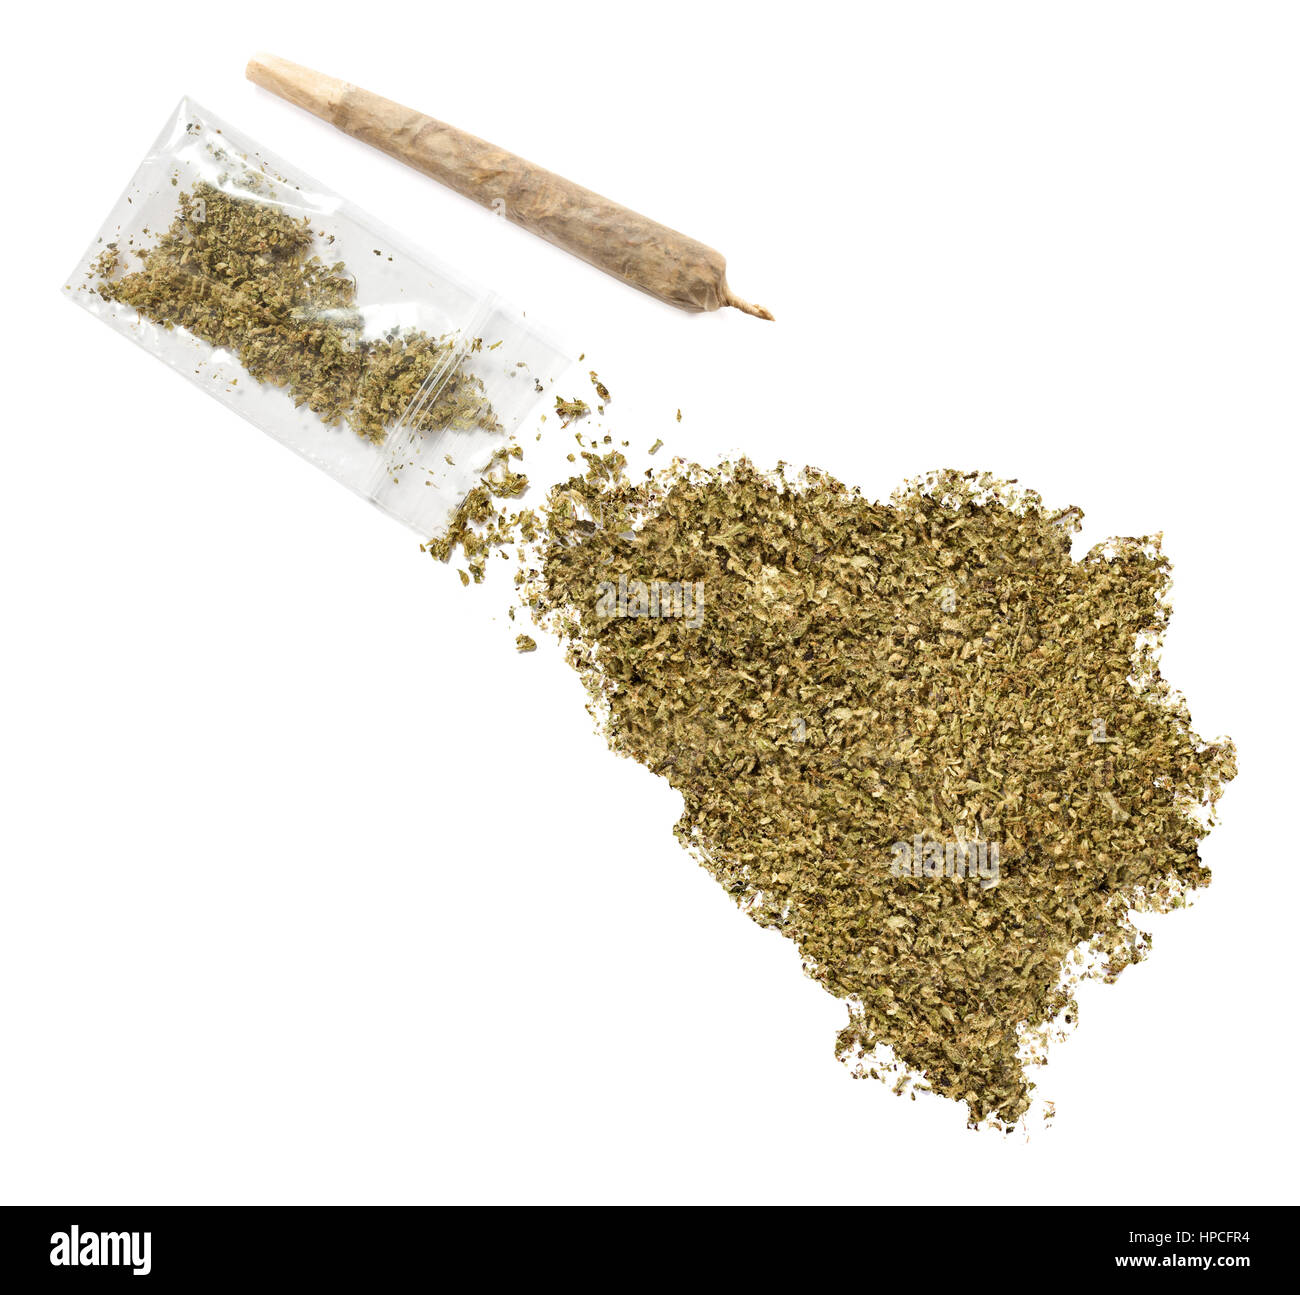 Grinded weed shaped as Bosnia and Herzegovina and a joint.(series) - Stock Image